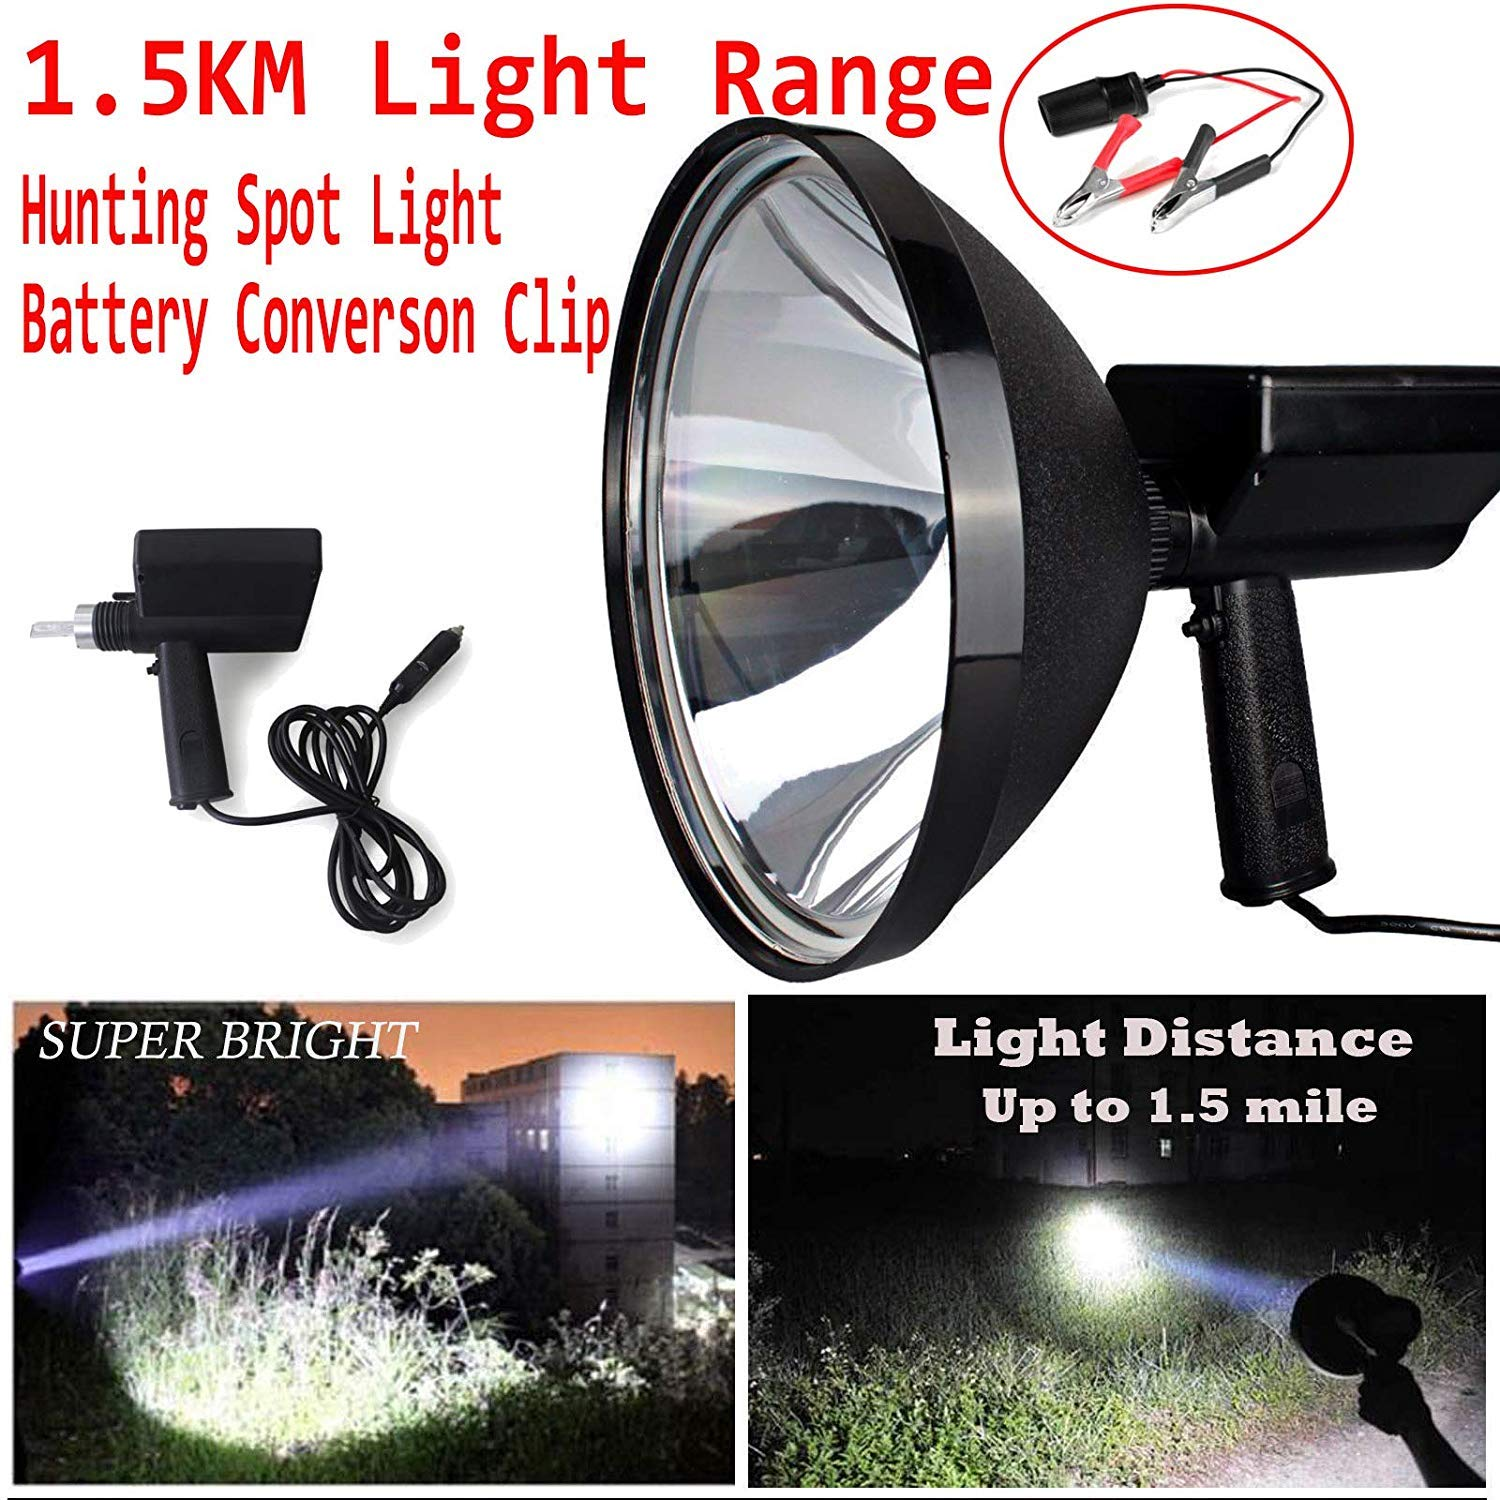 Powerful 100W 10000LM HID Xenon Flashlight 9 Inch 150KM Light Range Outdoor Indoor 12V Handheld Portable Spotlight Camping Hunting Boating Farming Patrolling